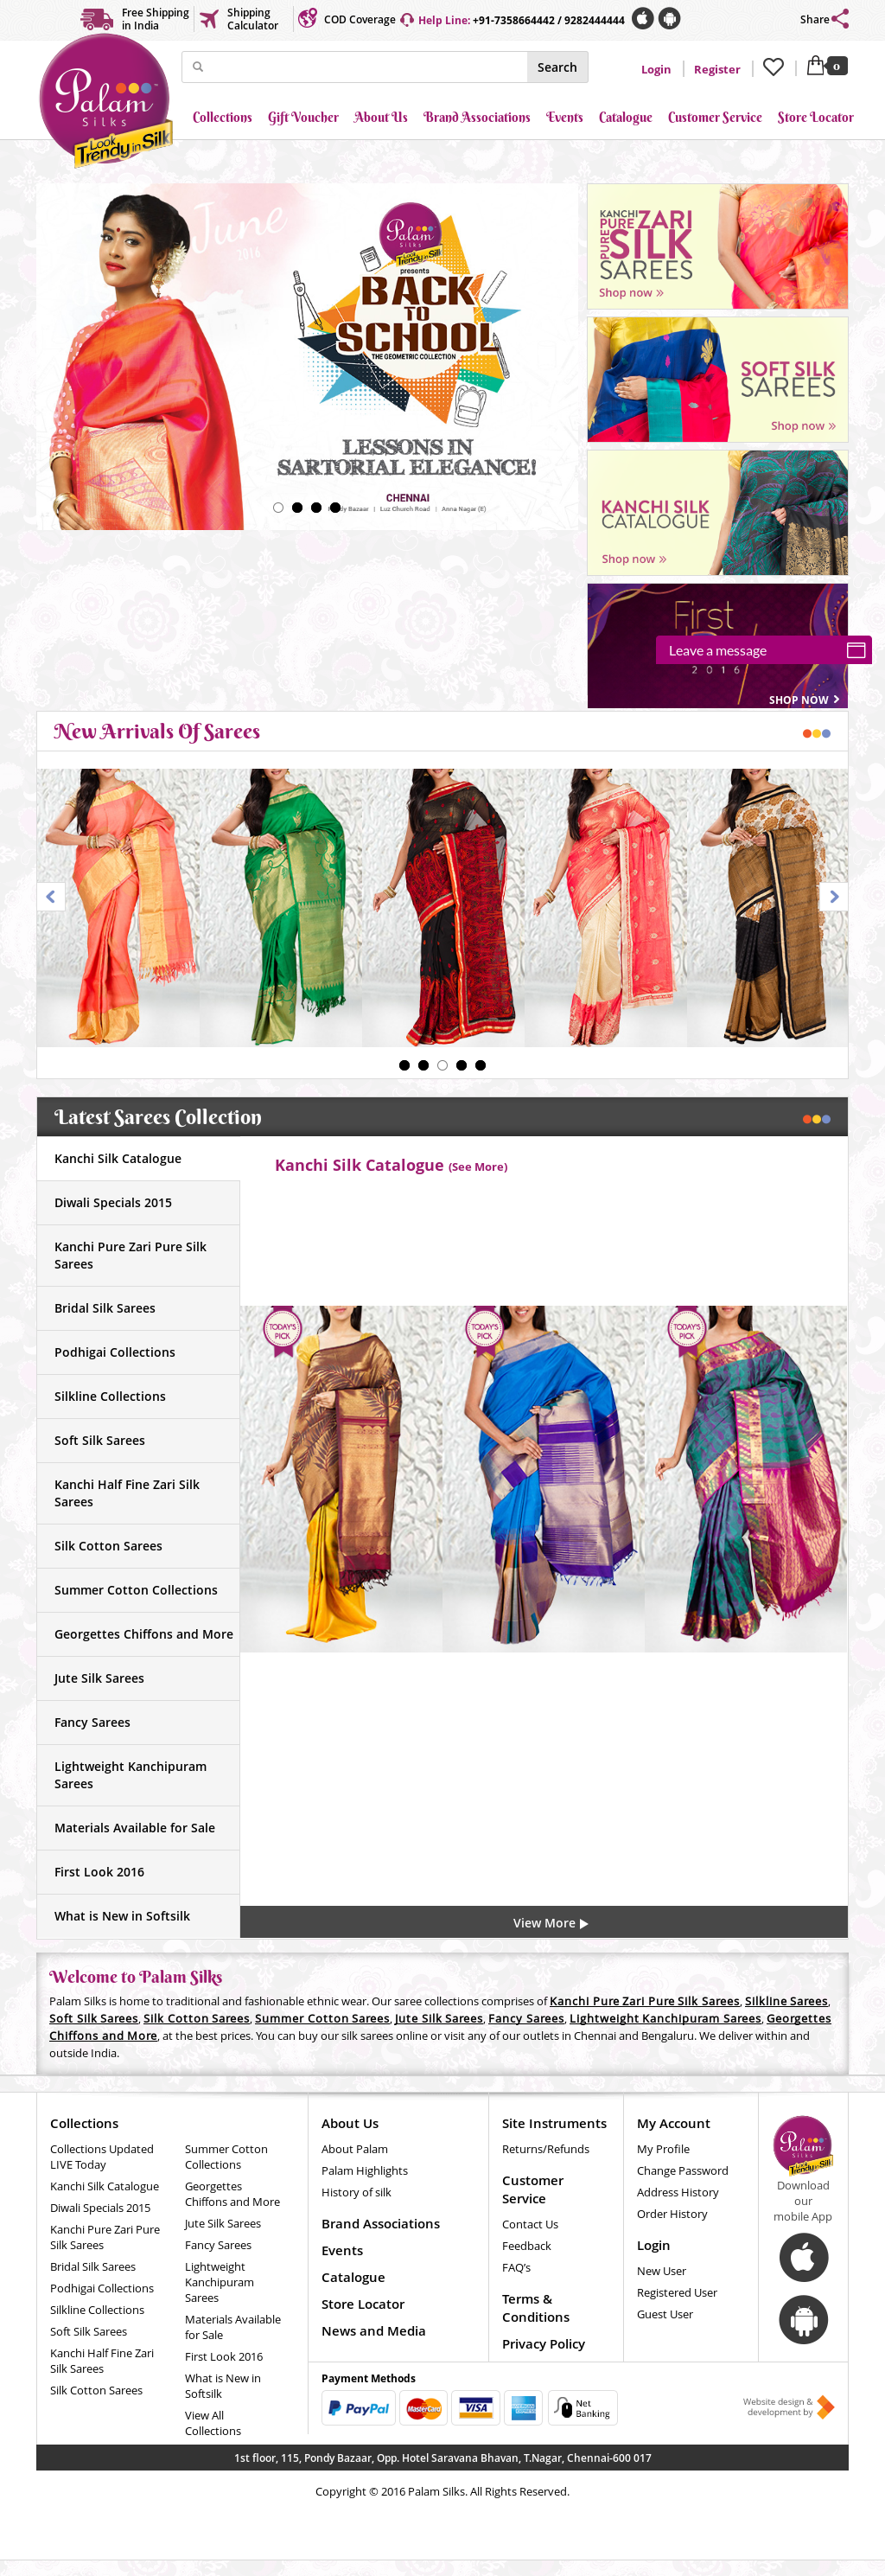 Sri Palam Silk Sarees Competitors, Revenue and Employees - Owler